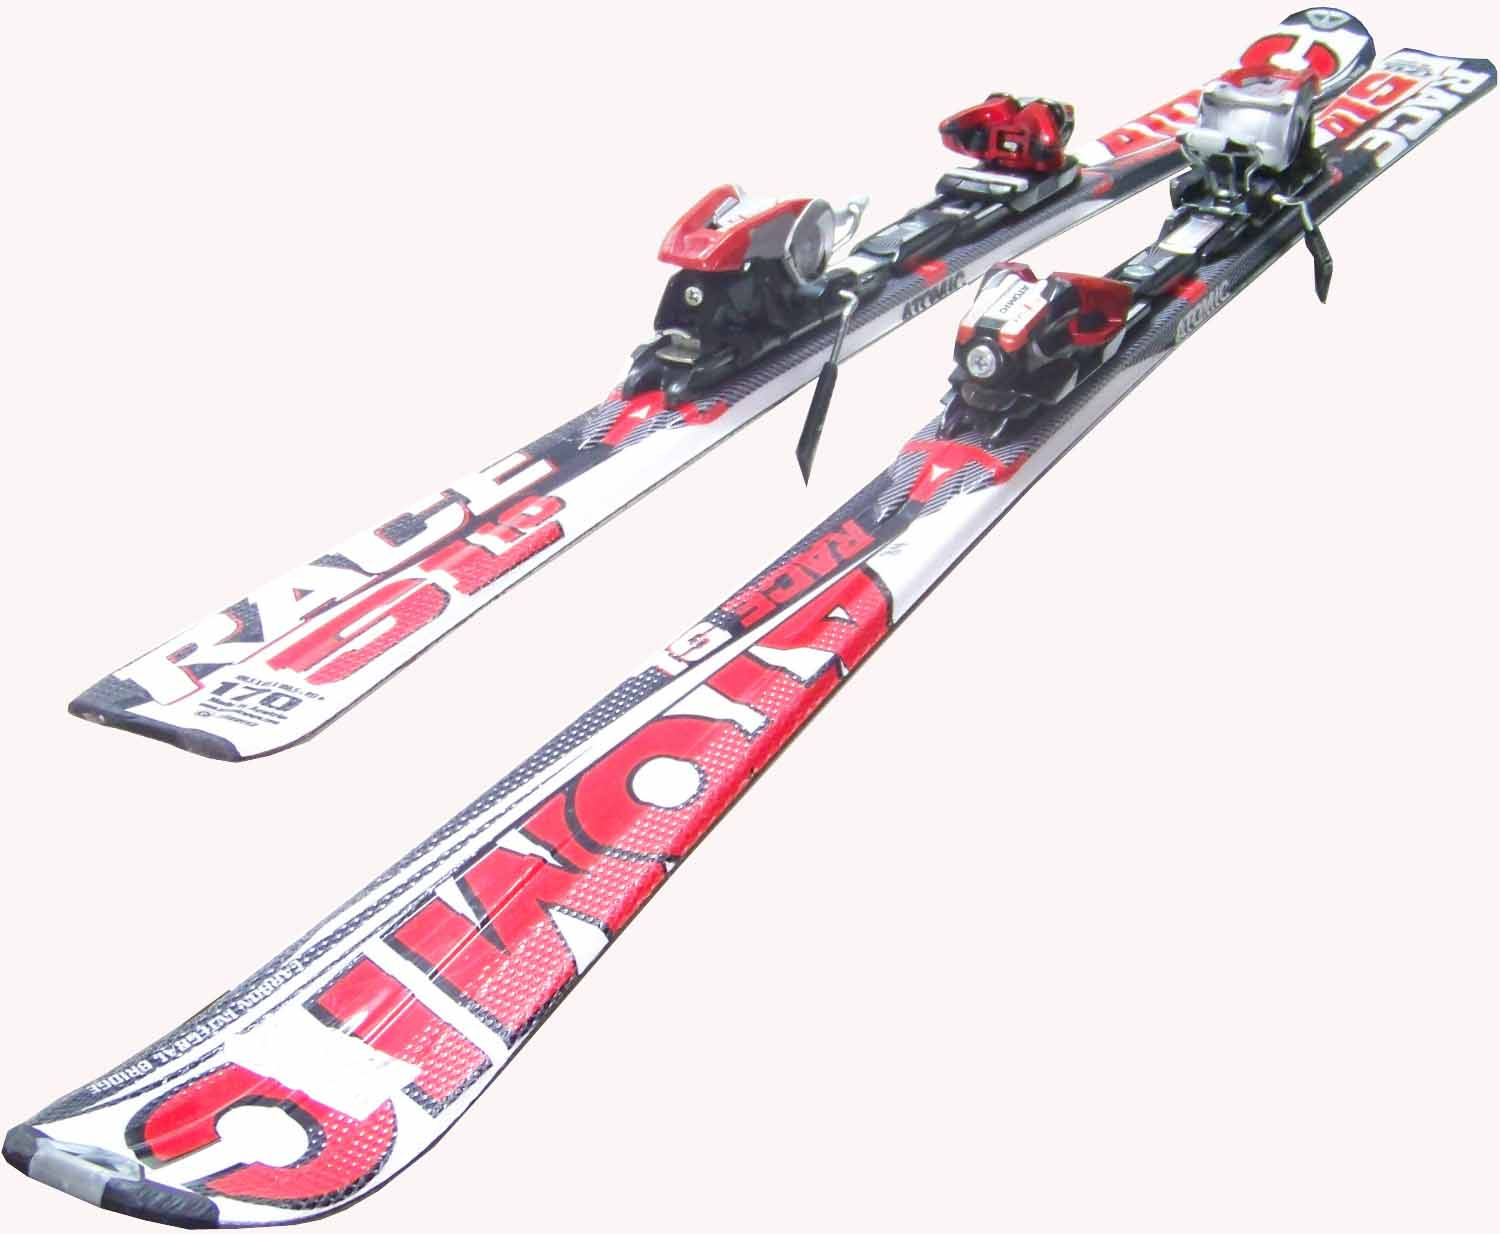 Slalom carver atomic race sl ski set cm alpin